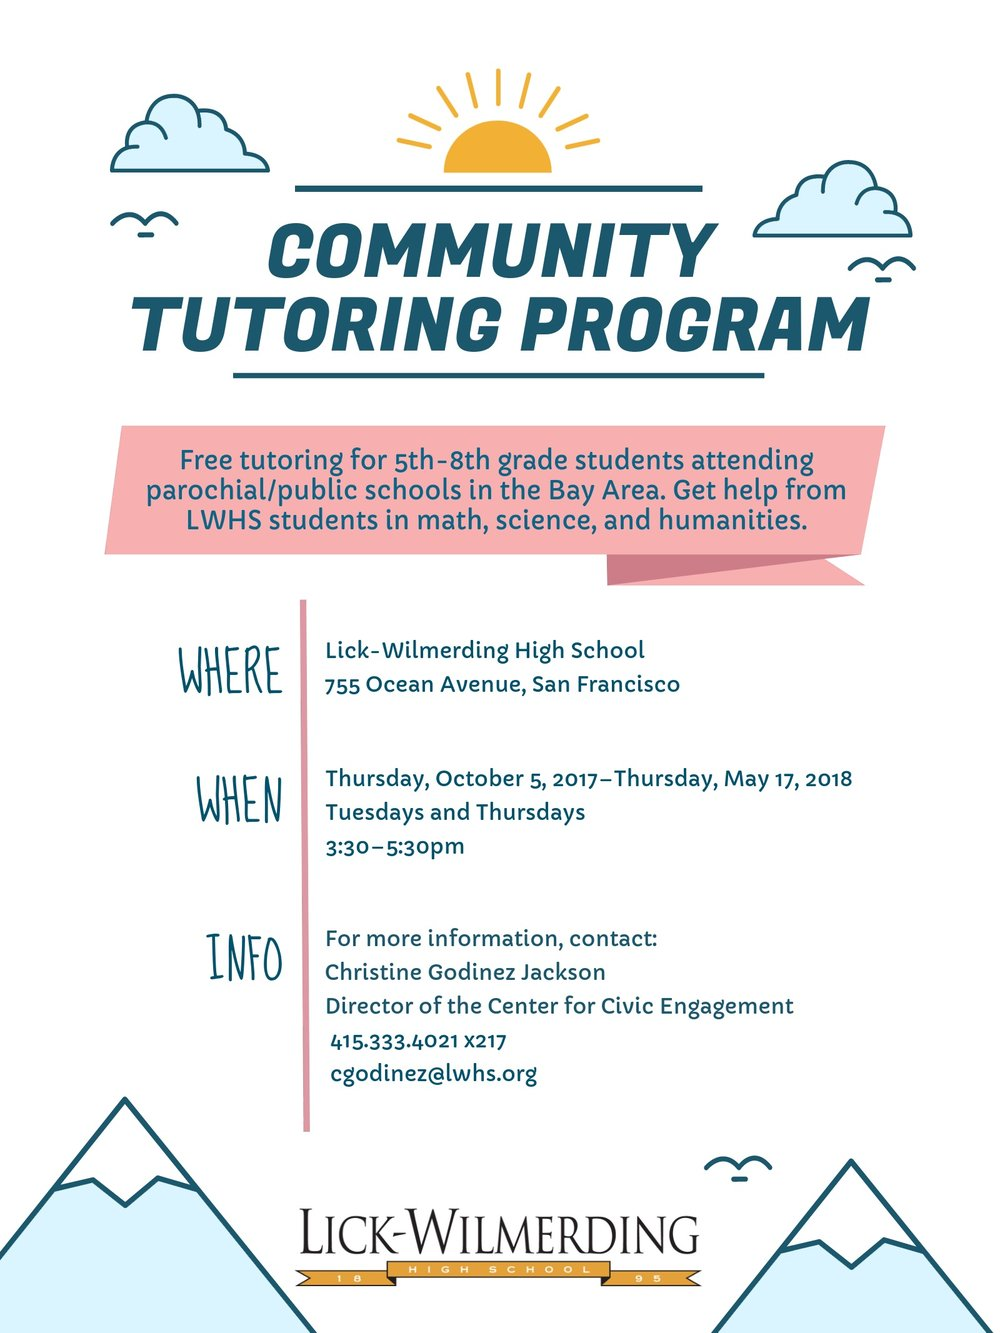 LWHS Community Tutoring Program (1).jpg